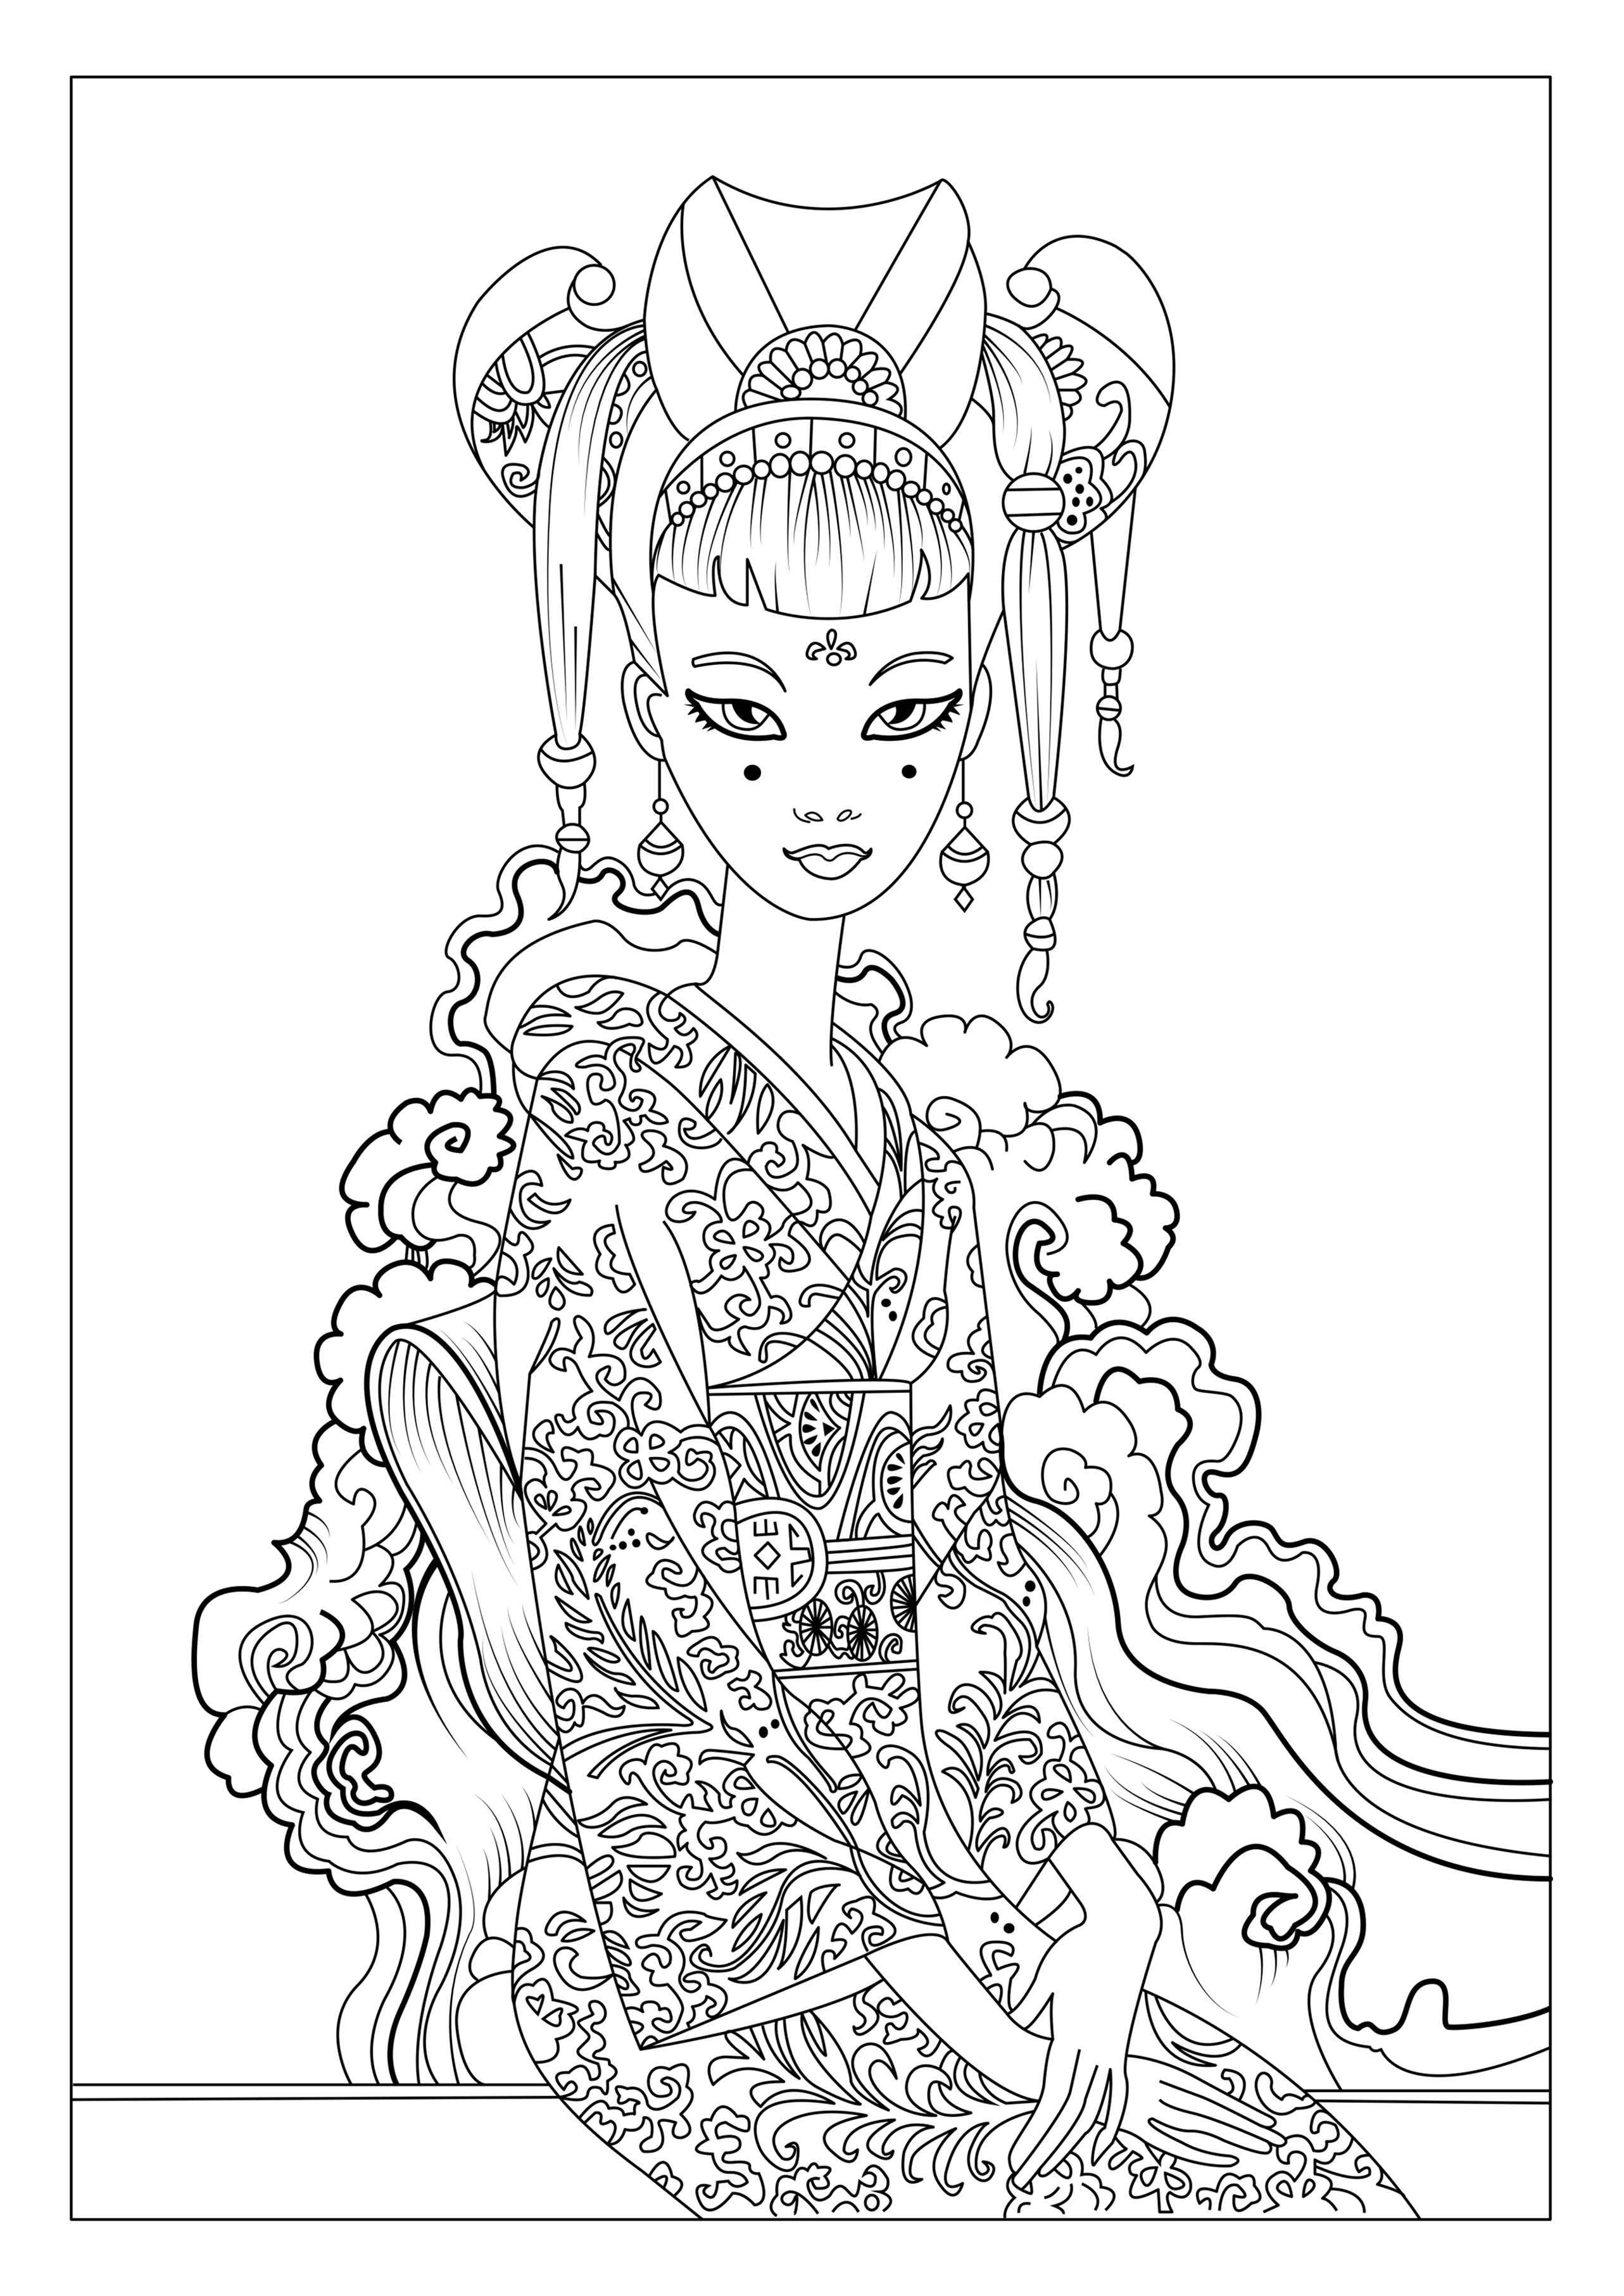 This Is Our Coloring Page With A Japan Woman By CelineFrom